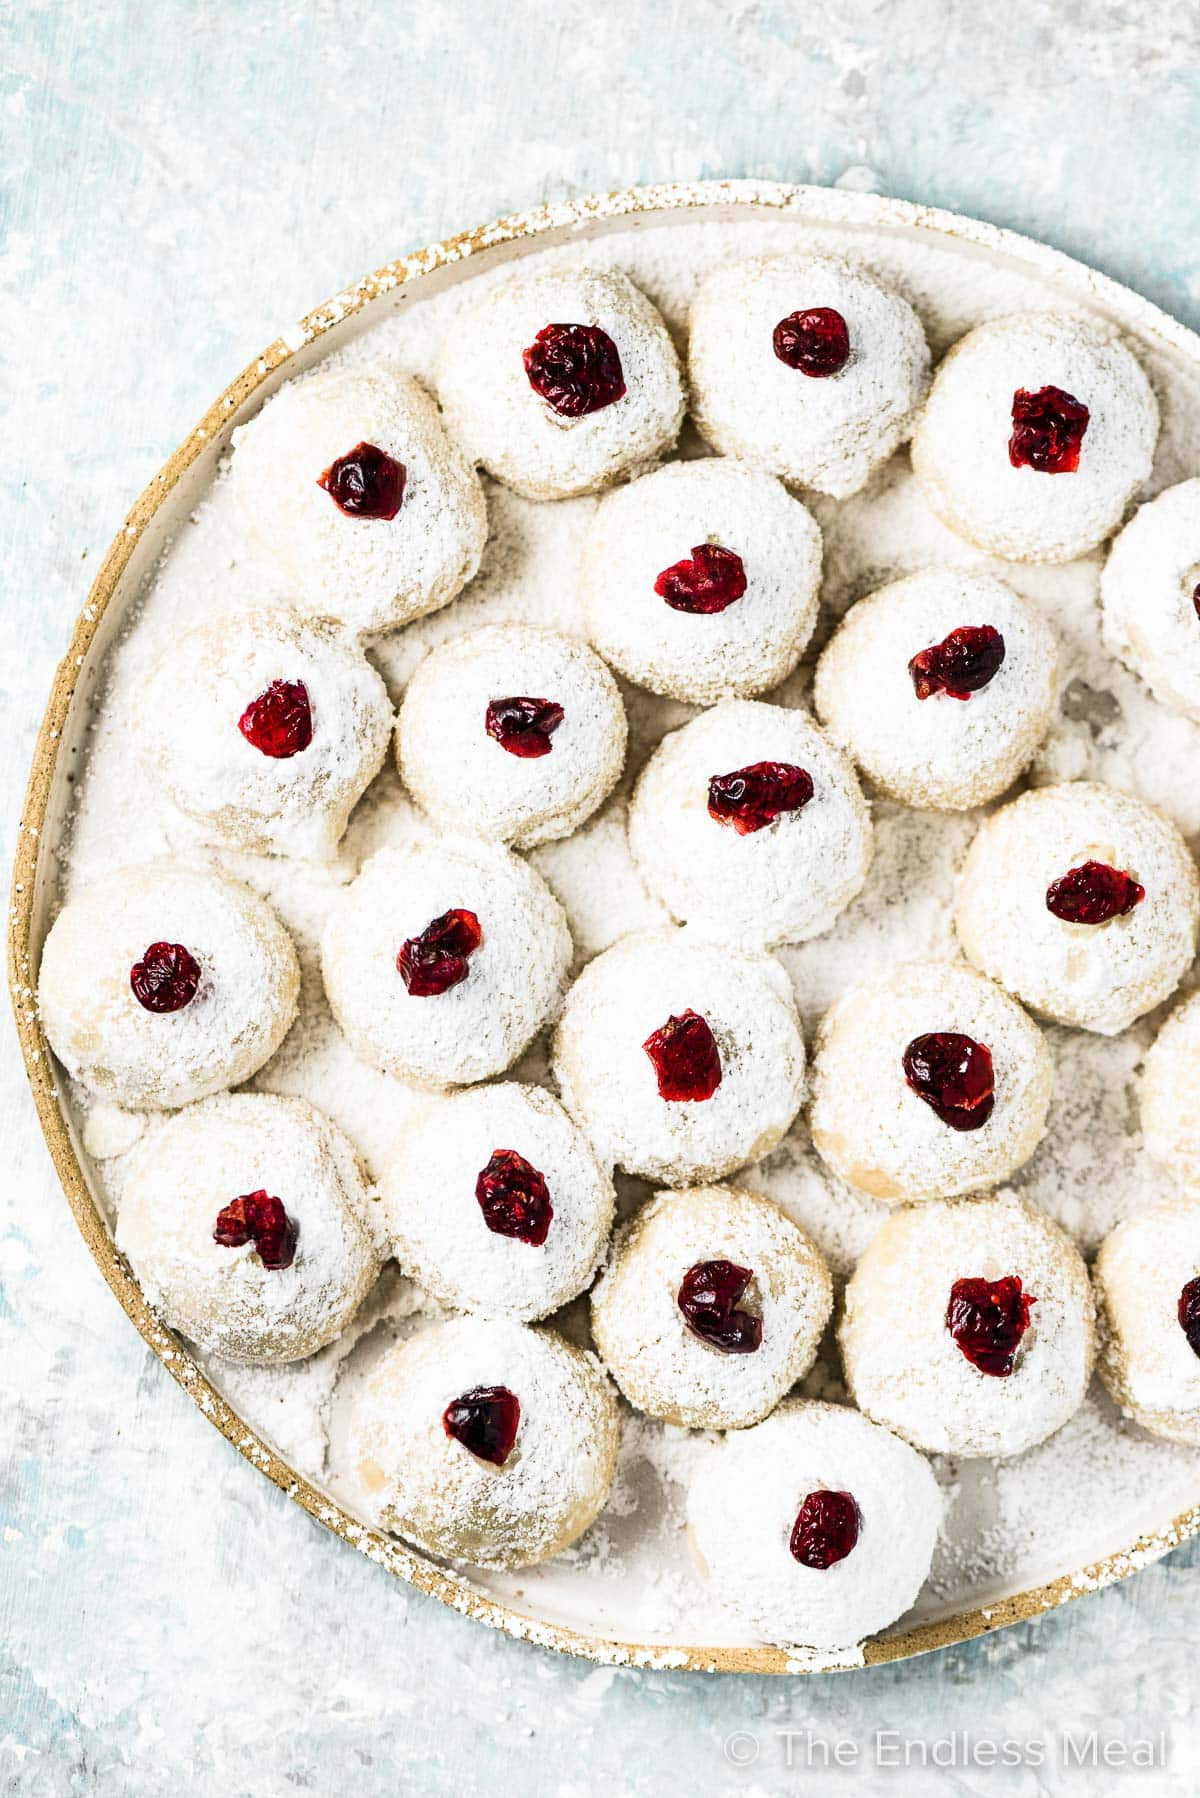 A plate filled with snowball keto Christmas cookies topped with cranberries.